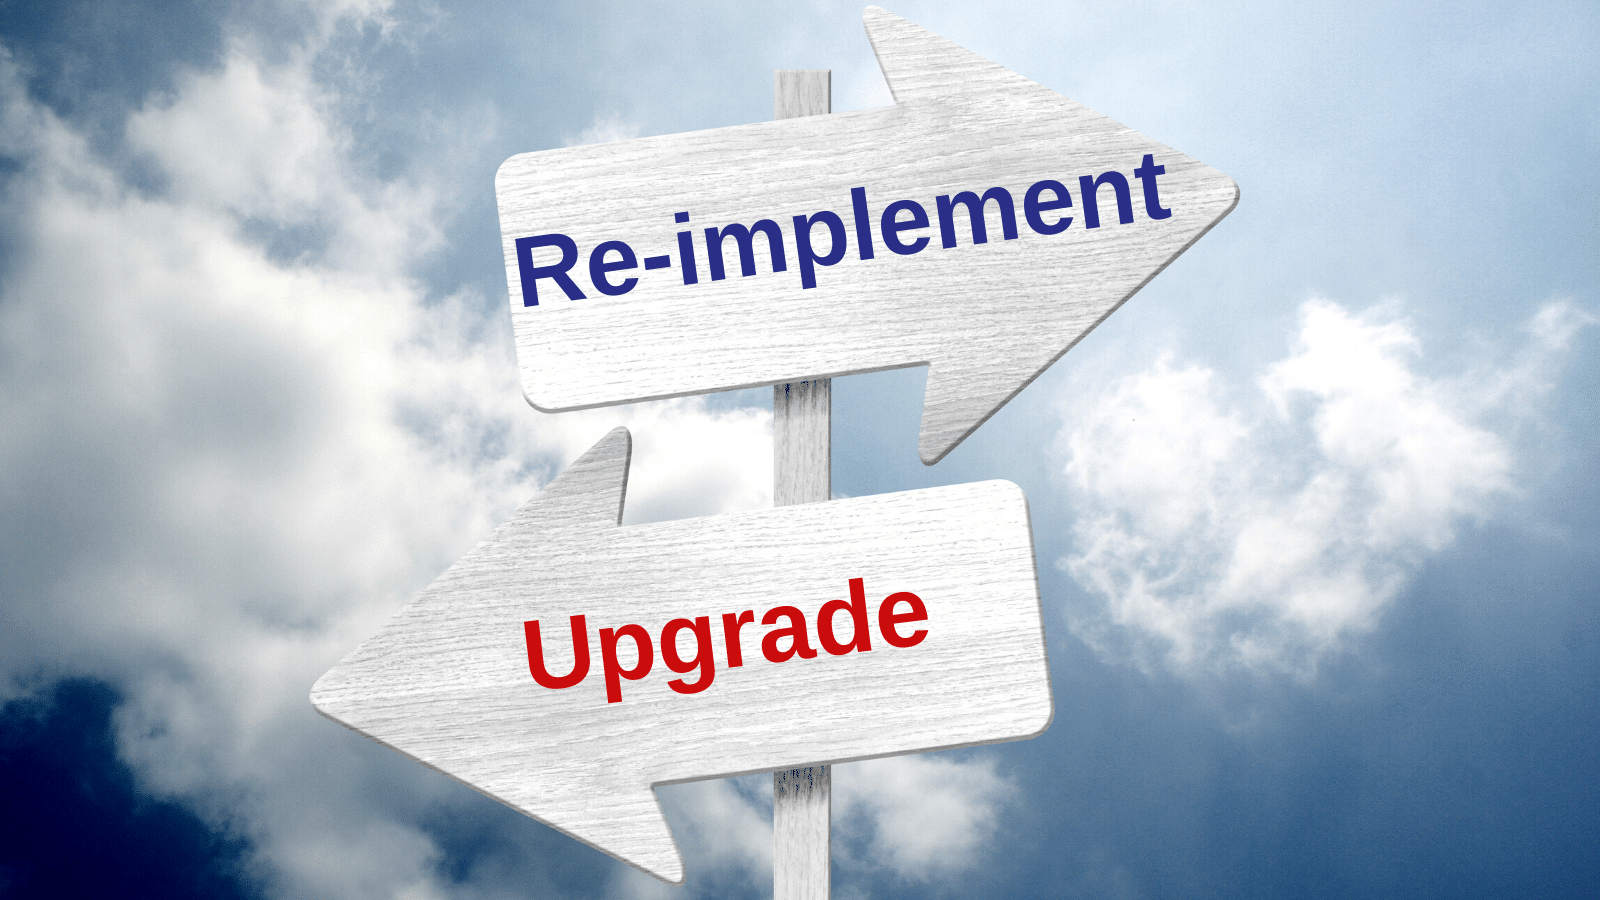 Should you re-implement your ERP system on the latest version instead of upgrading?